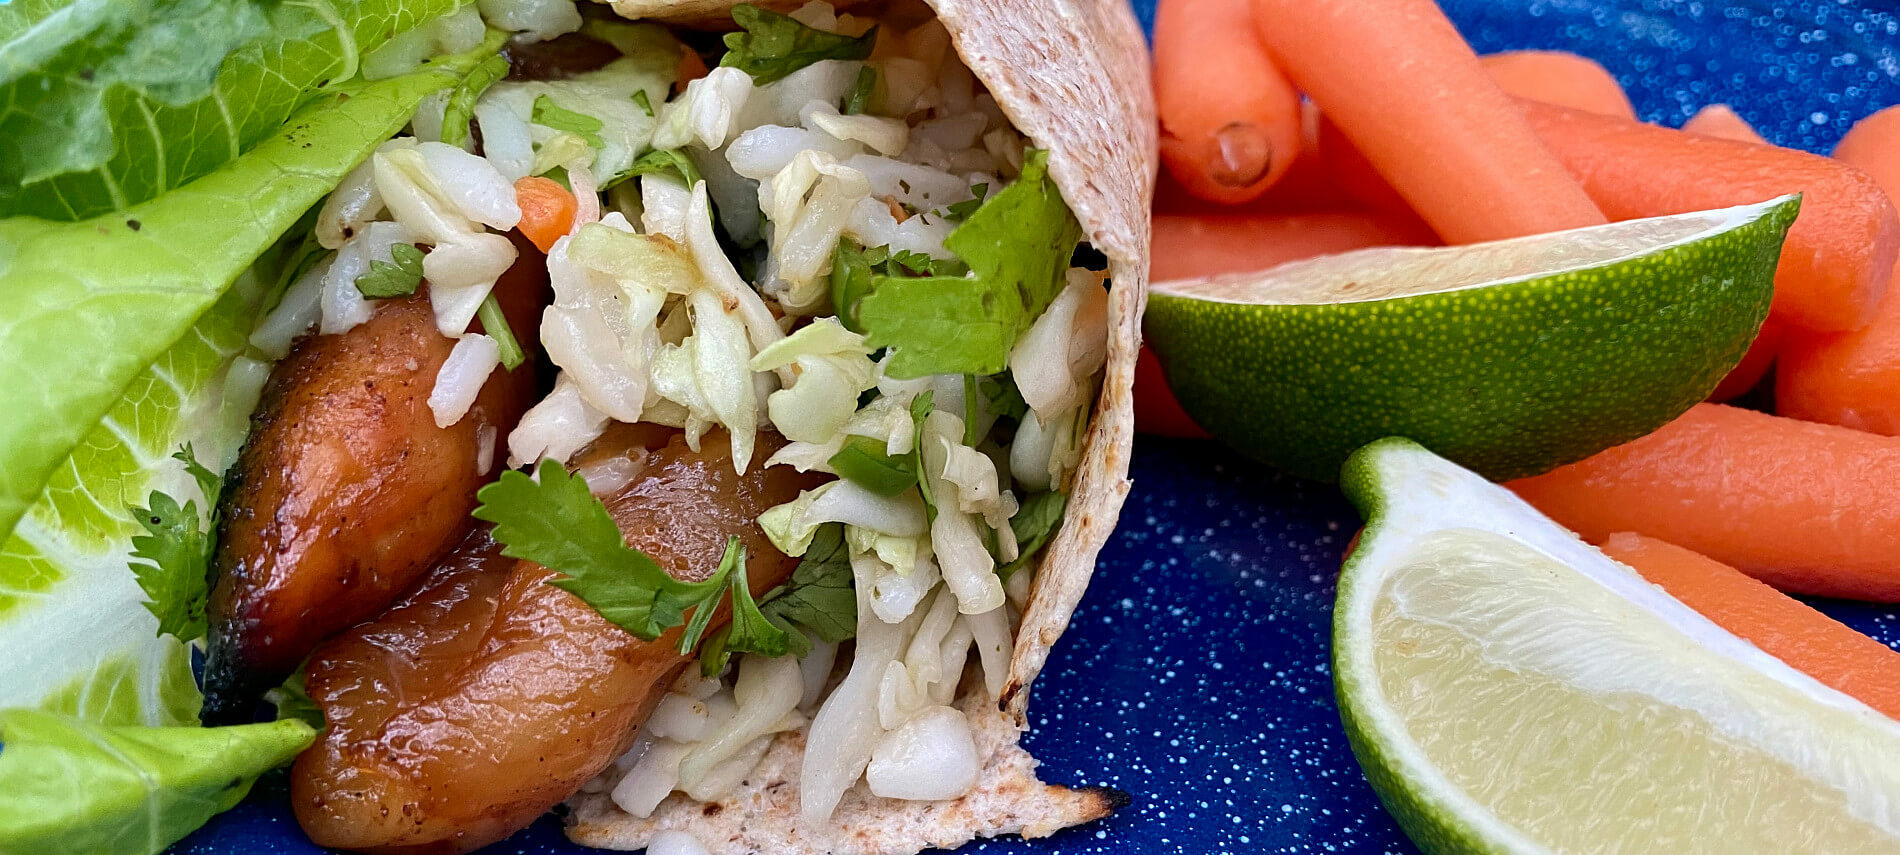 Ginger Chicken Wraps on a blue plate with carrots and limes